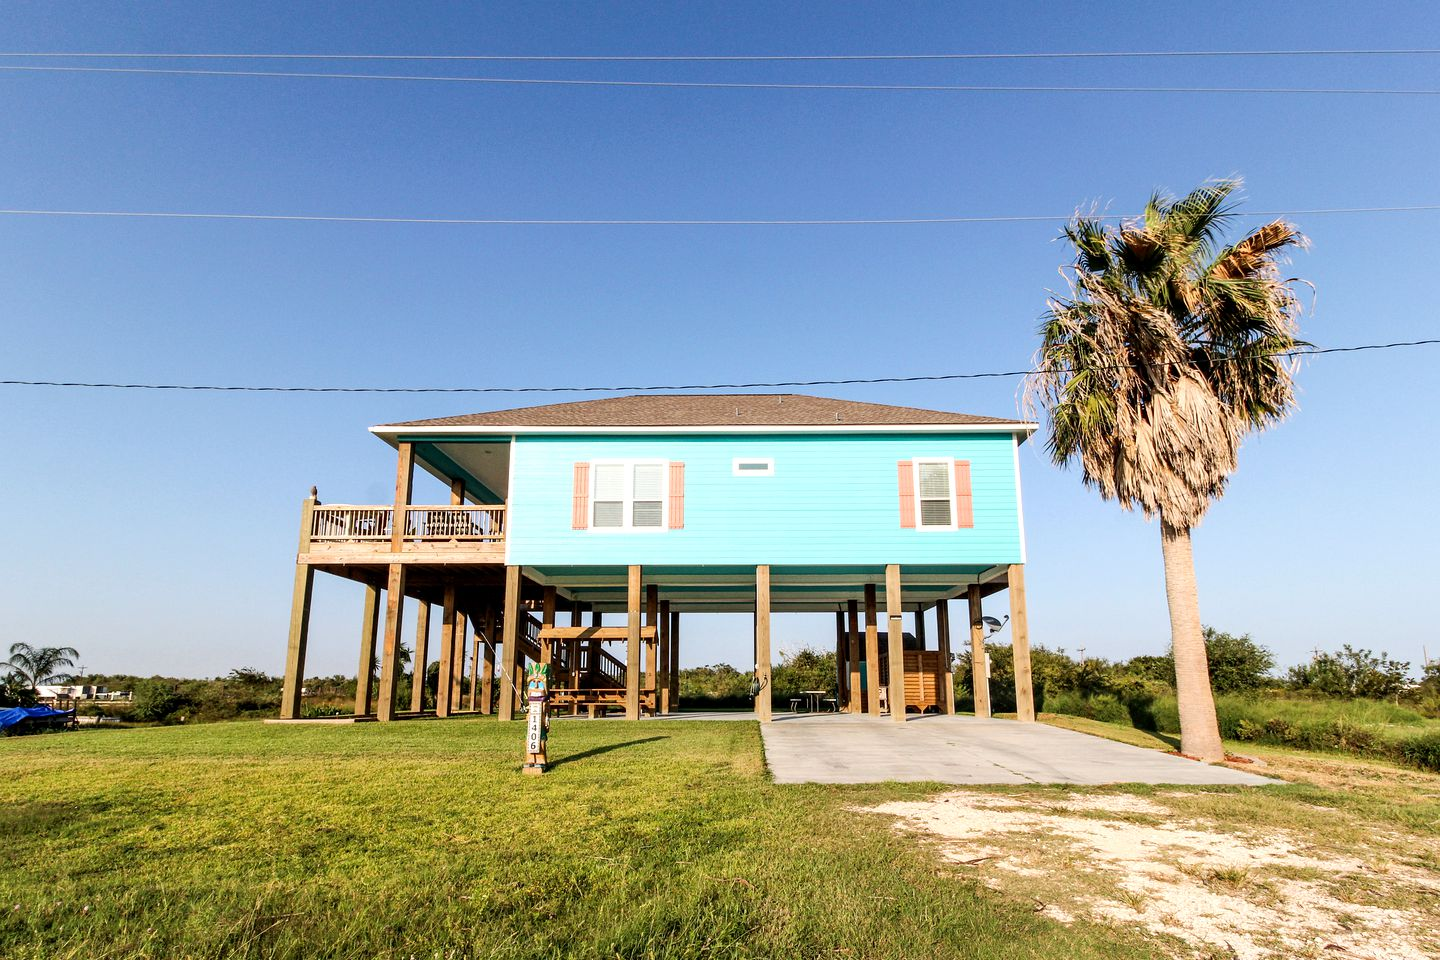 Beach Houses (Port Bolivar, Texas, United States)